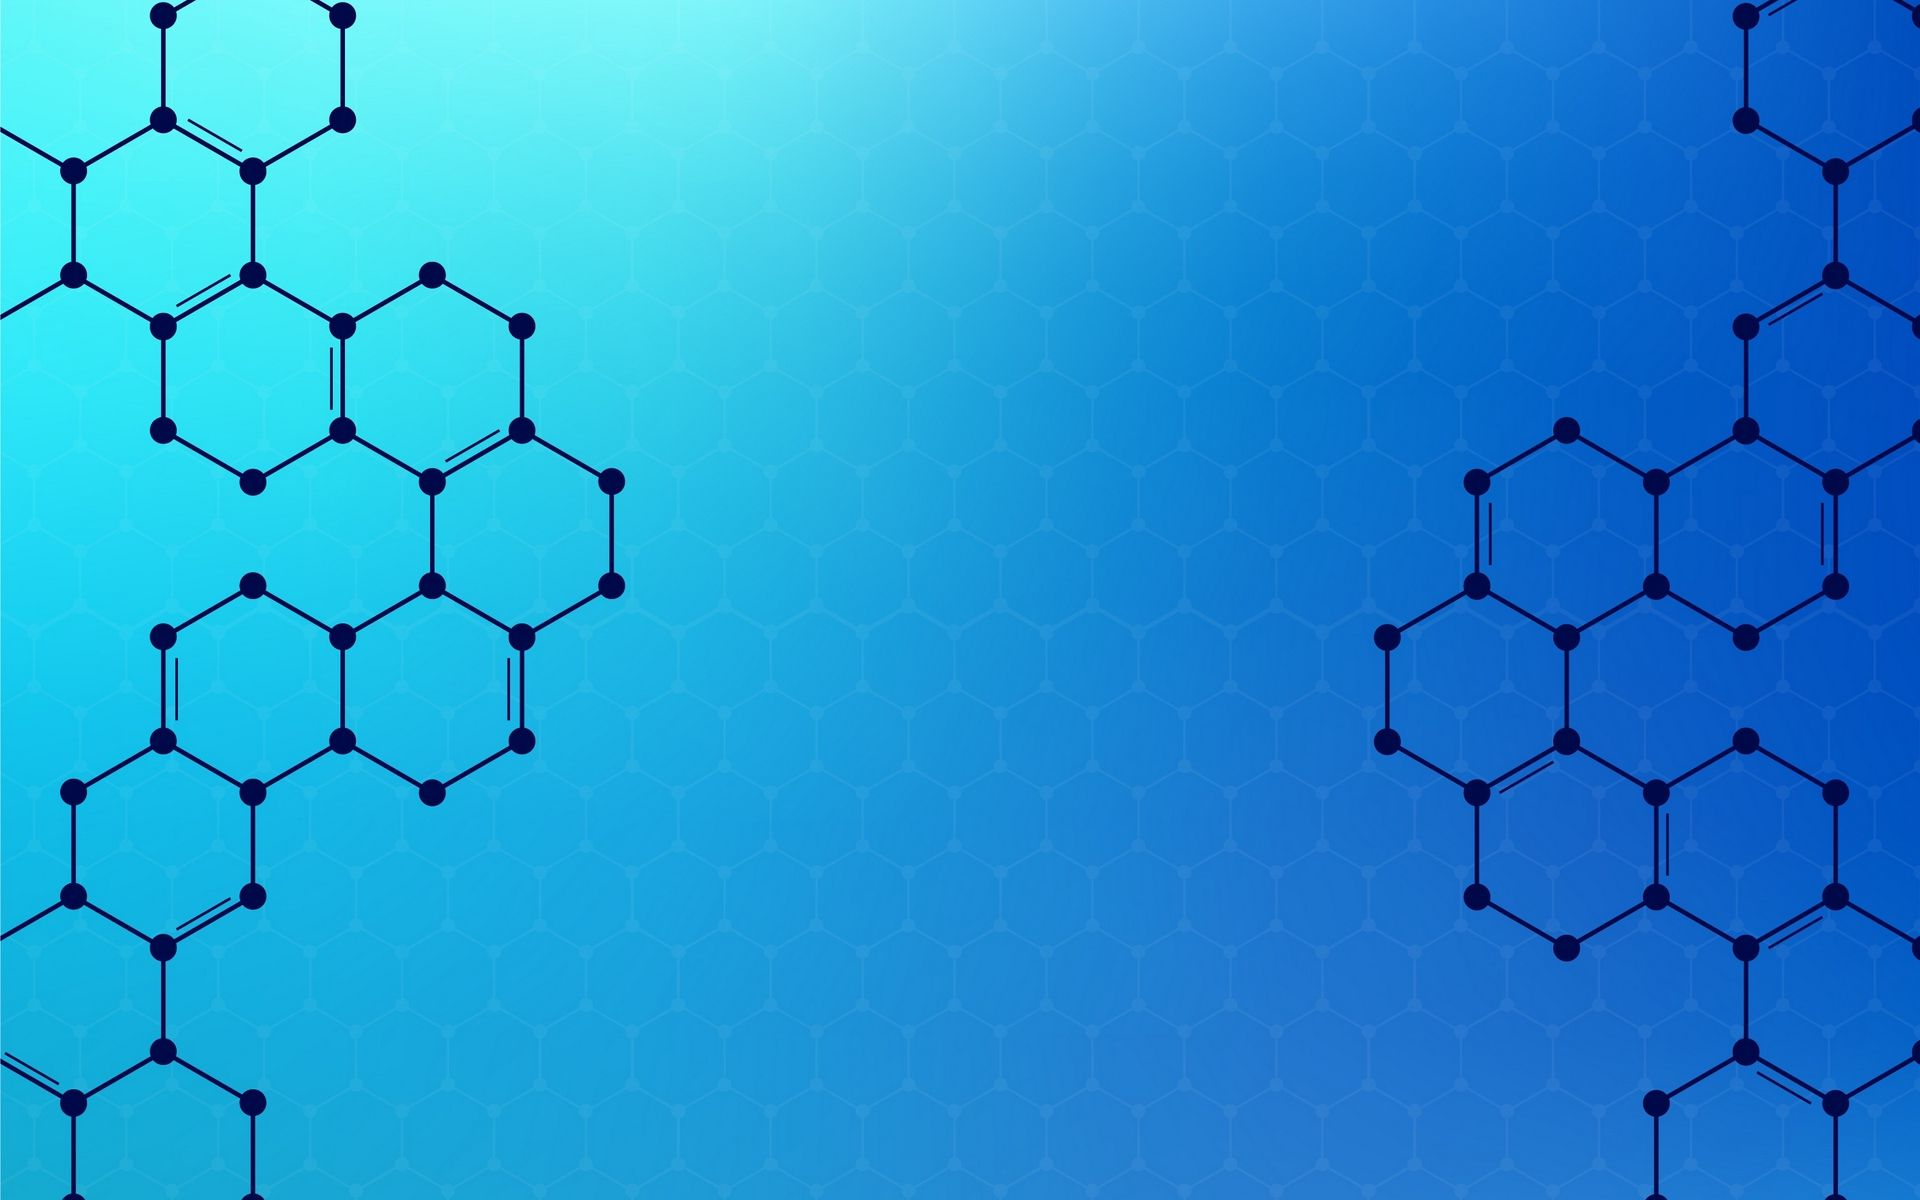 Download Wallpaper 1920x1200 Hexagons Shape Connections